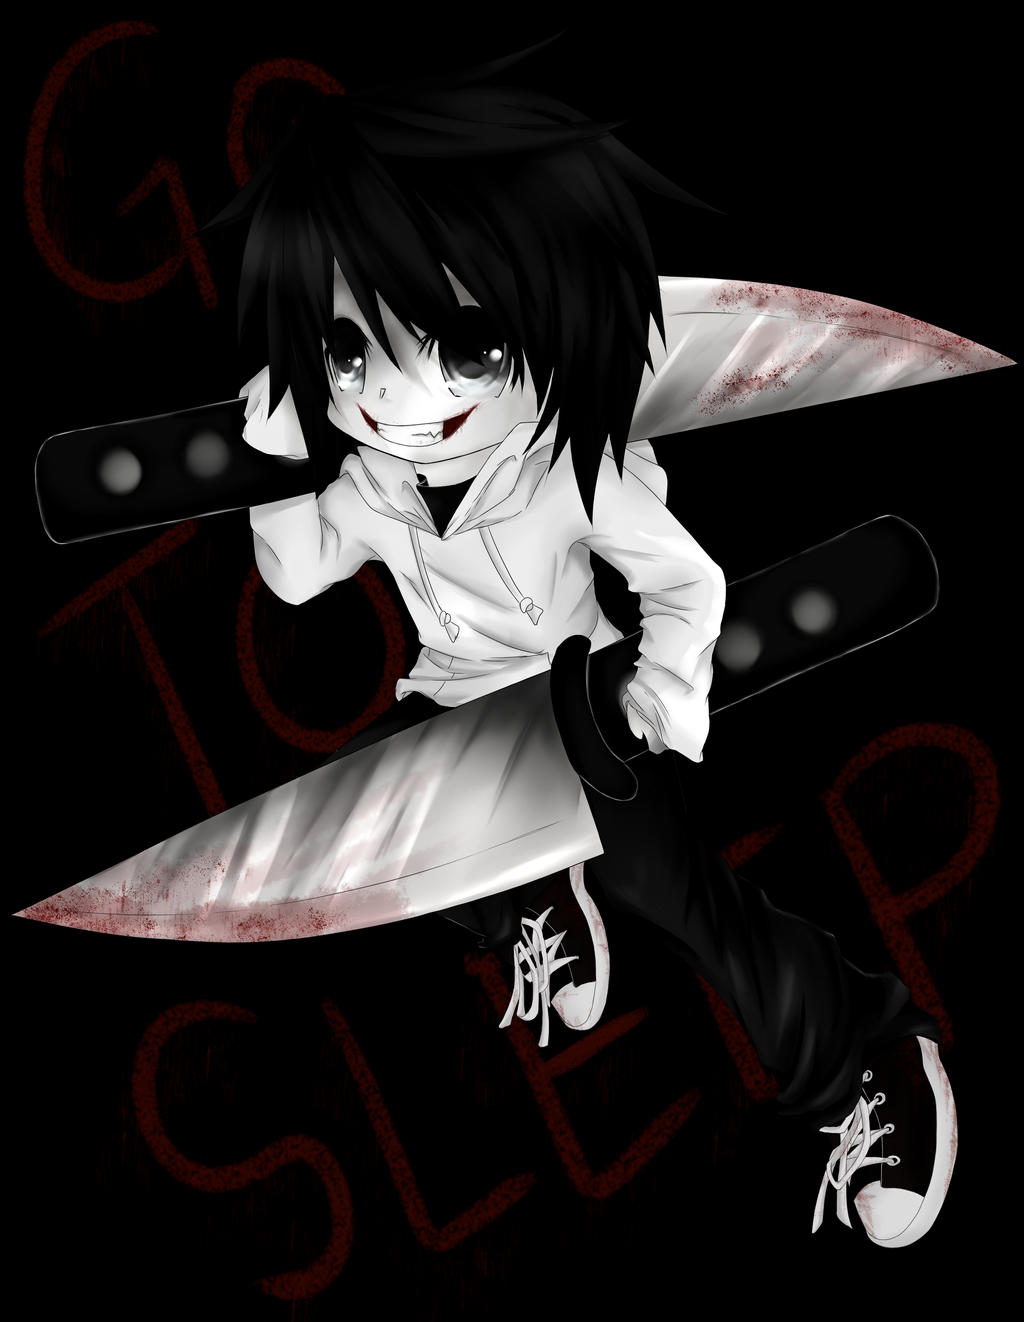 Jeff The Killer chibi by Ren-Ryuki